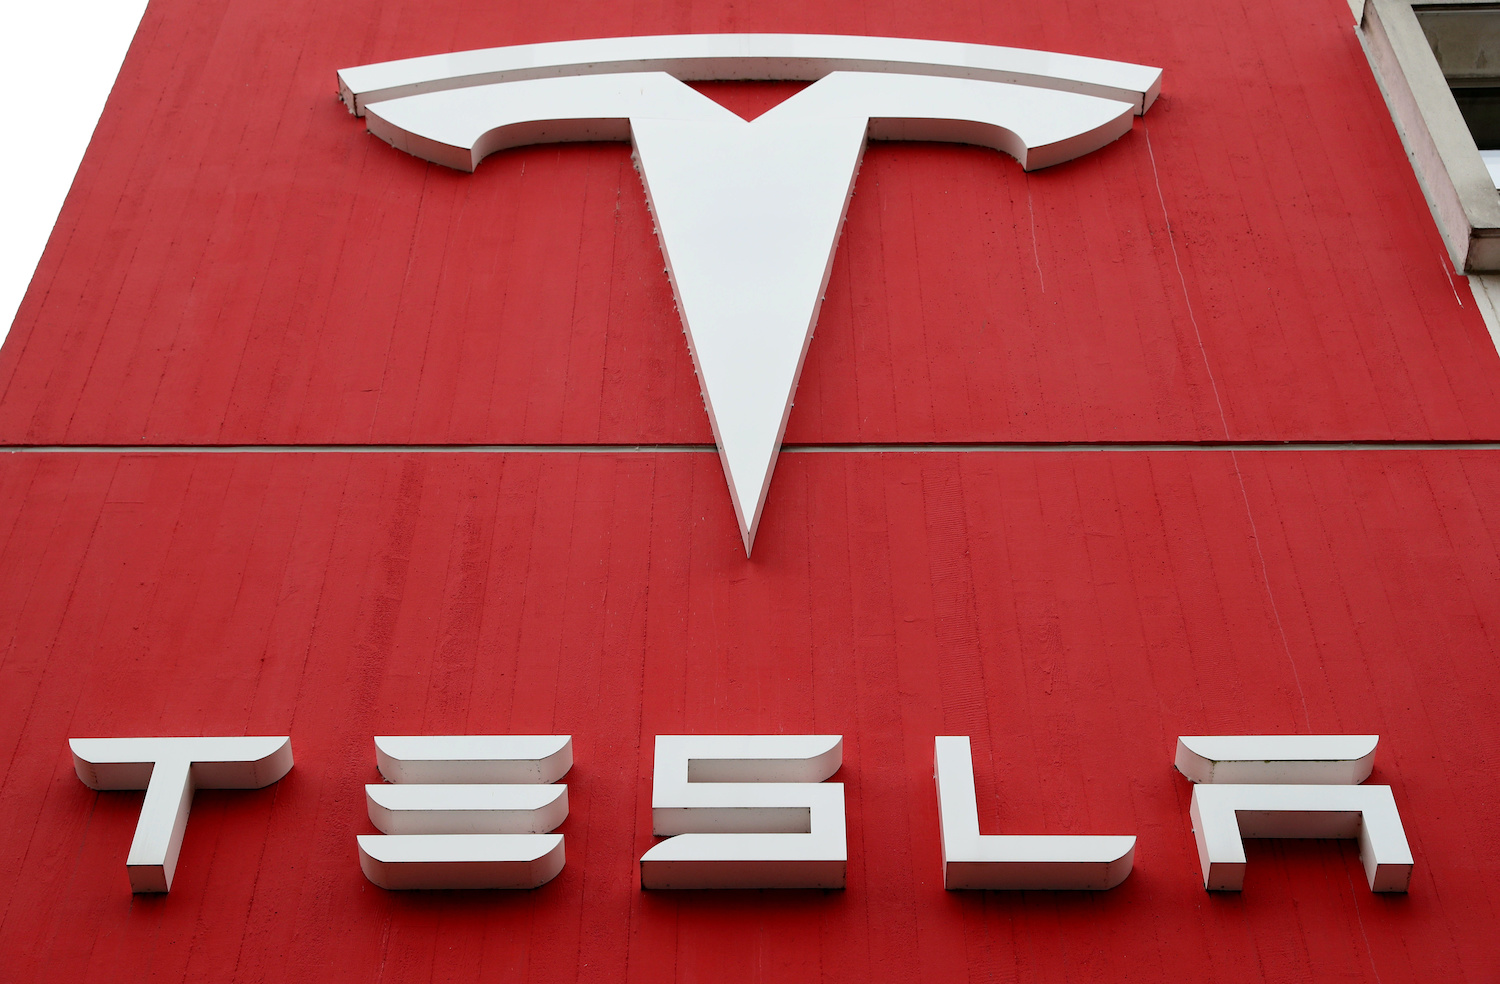 Electric carmaker Tesla invests $1.5 billion in bitcoin: official